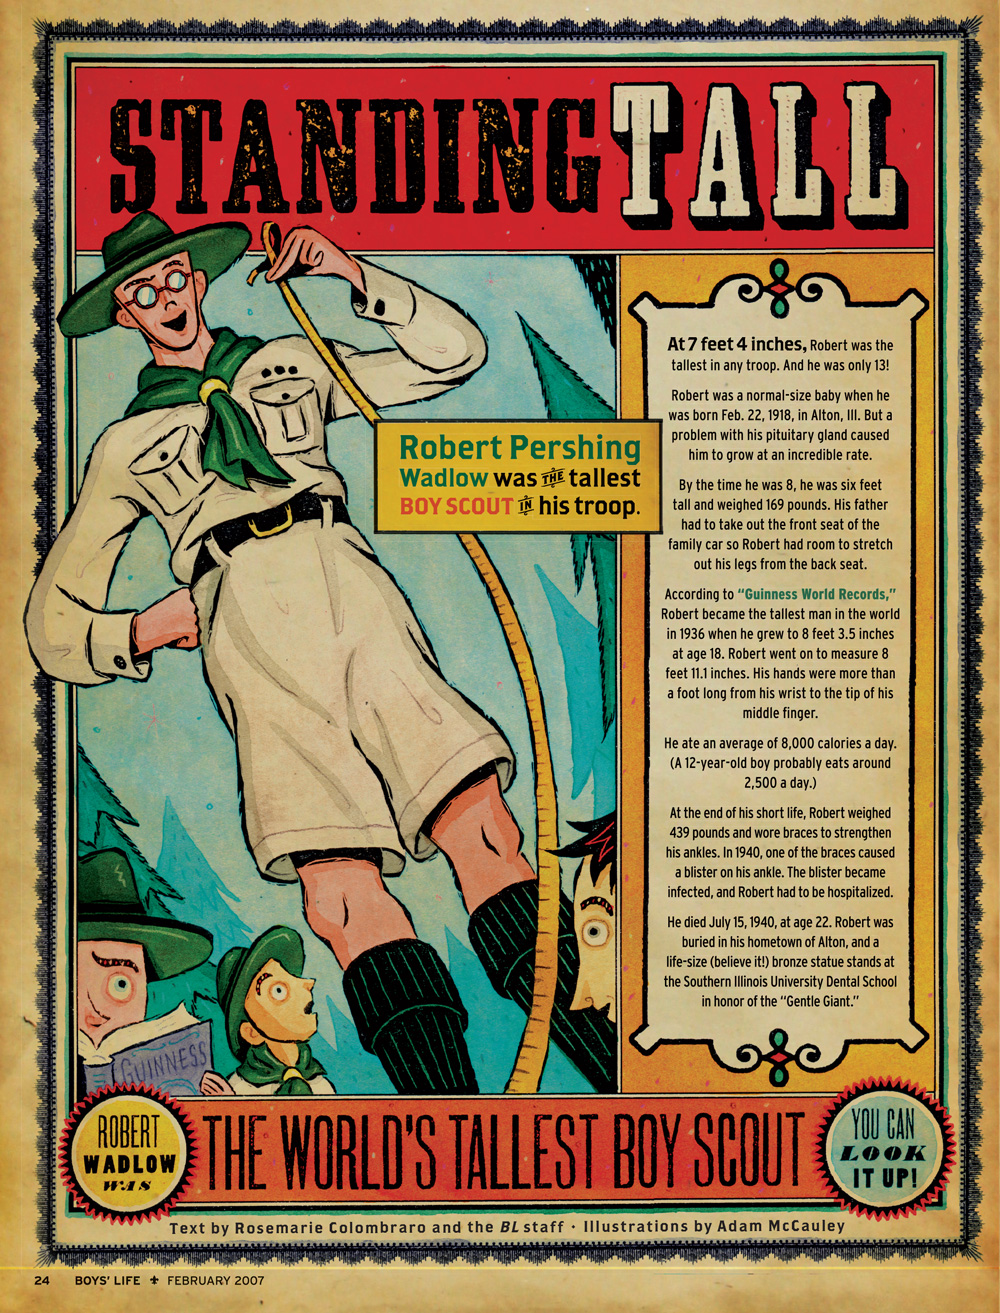 World's-Tallest-Boy-Scout